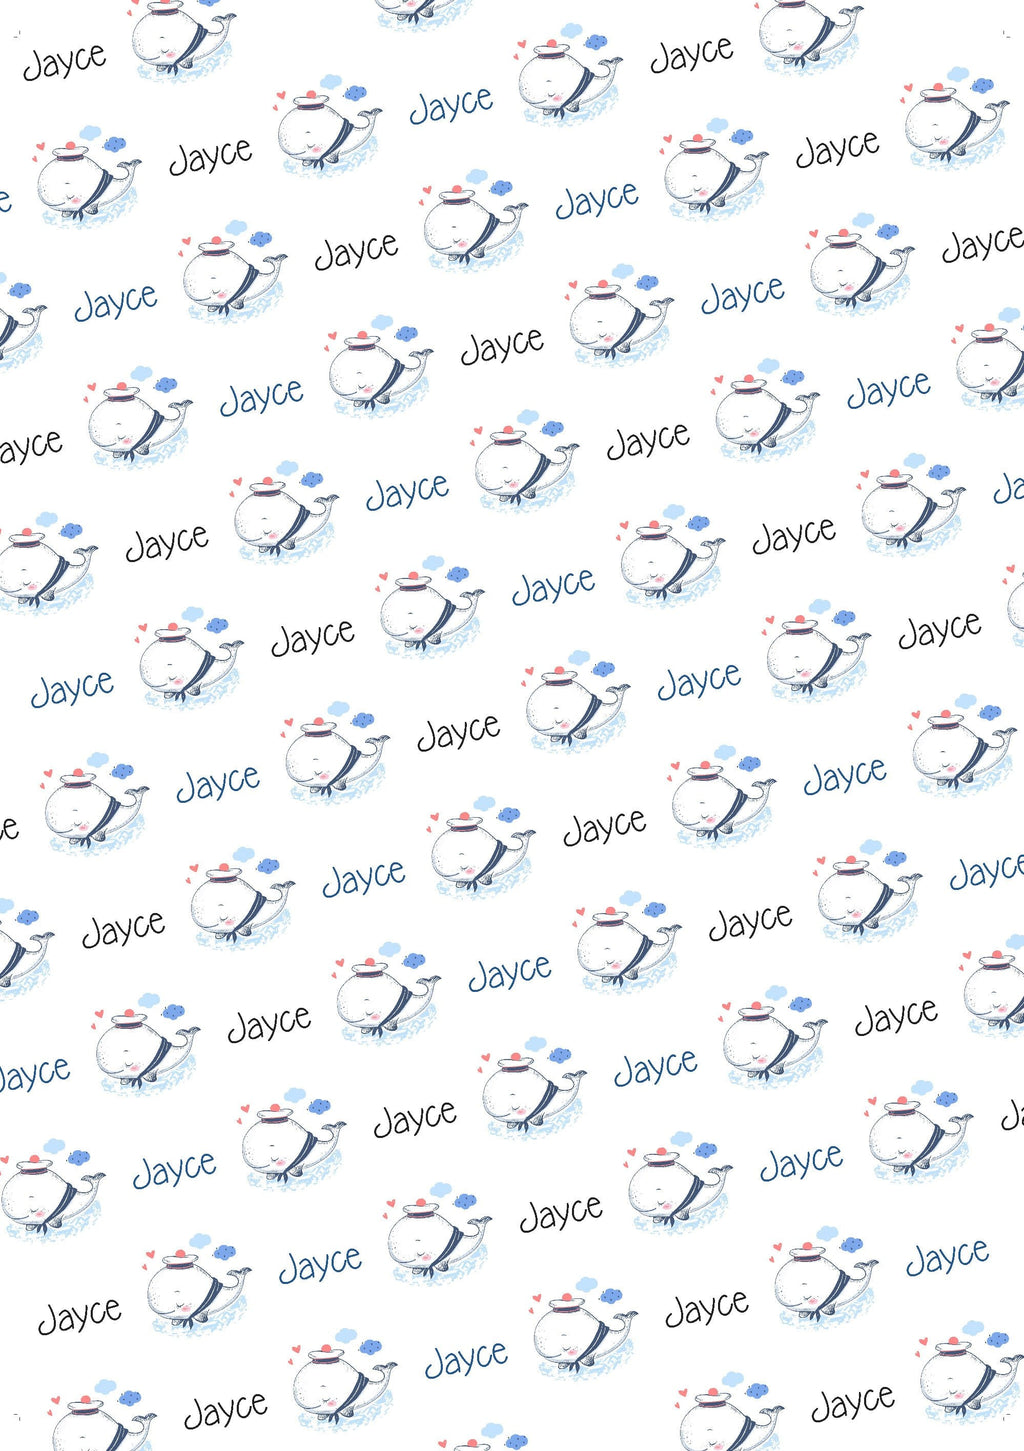 Baby Whale Personalized Baby Shower Gift Wrap - Potter's Printing